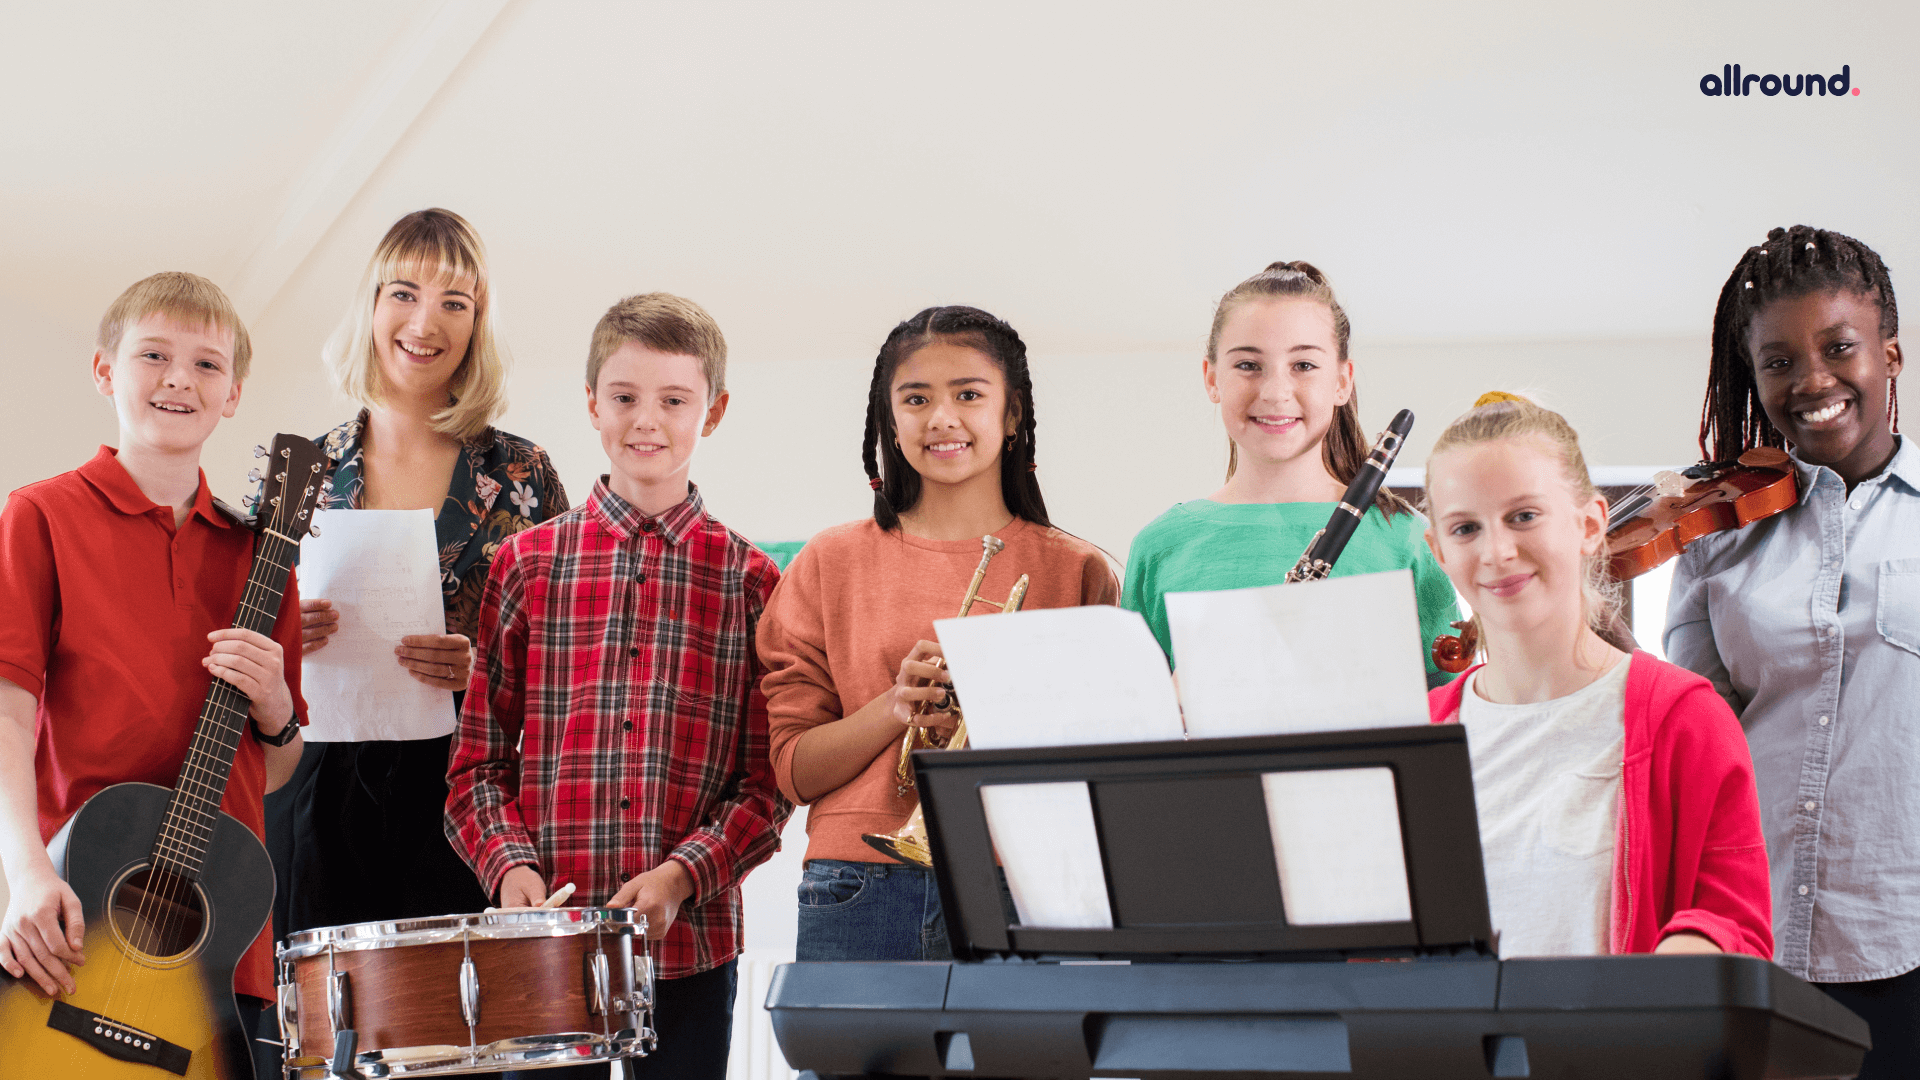 Foundation devoted to music education